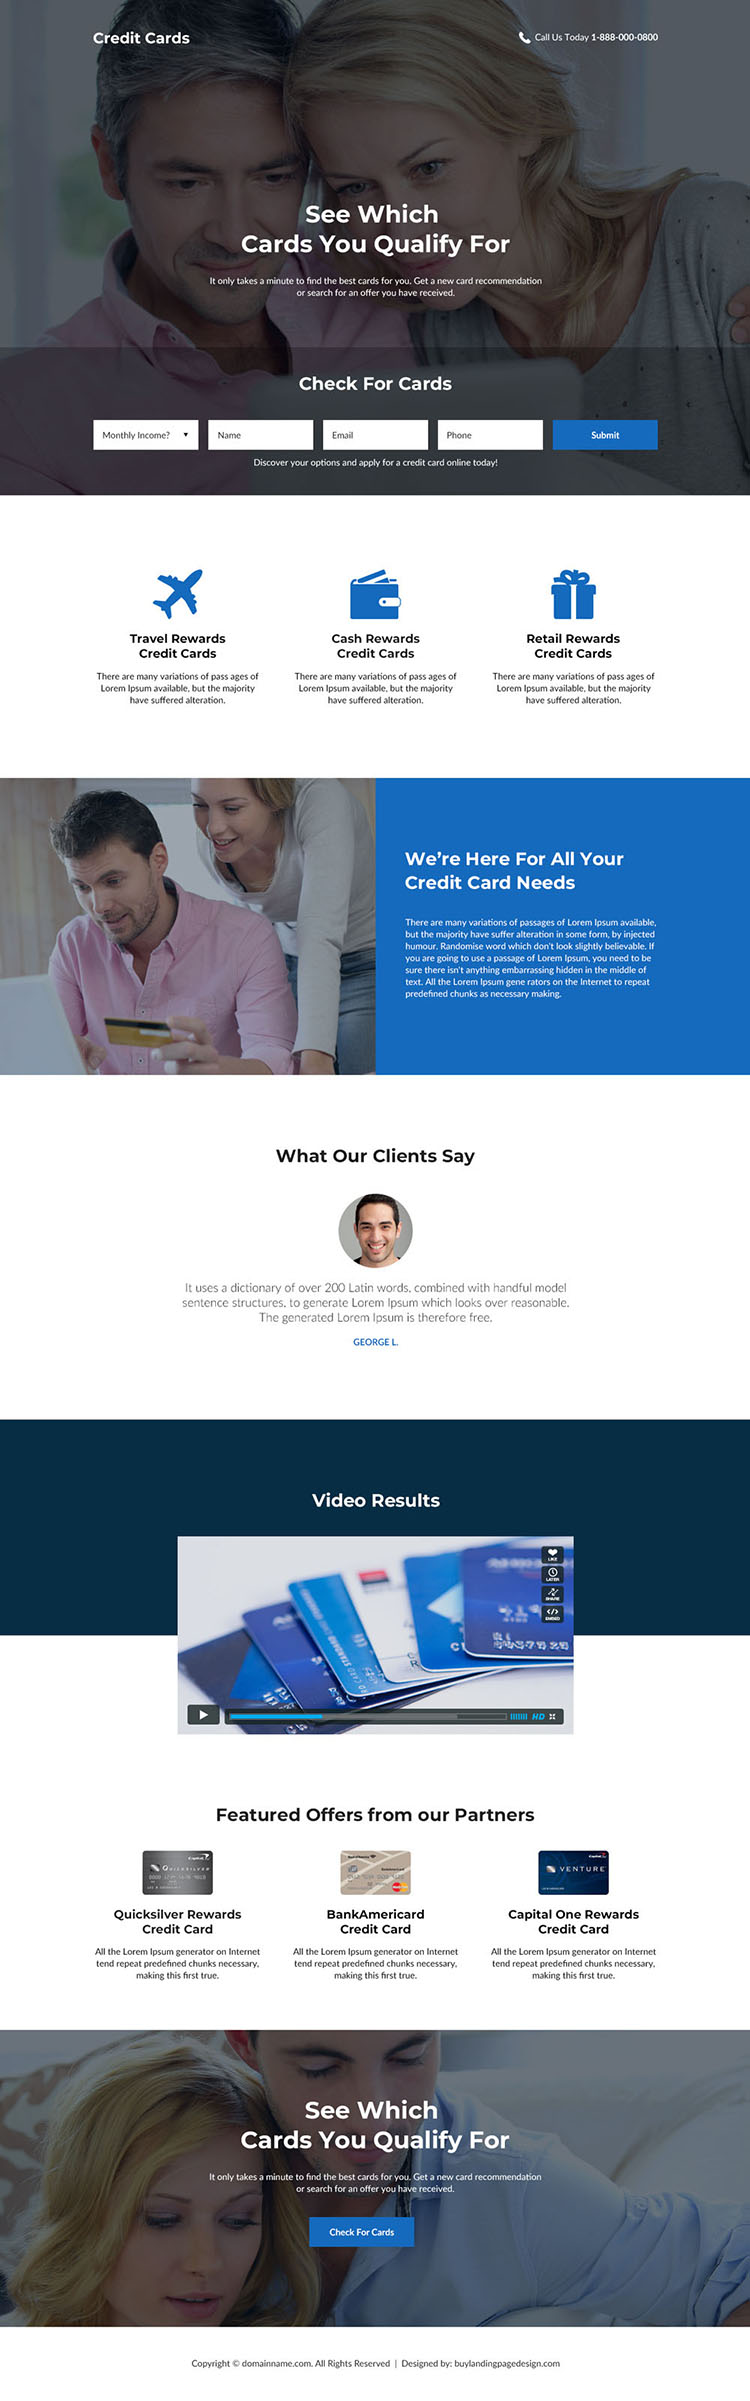 credit card service lead generating landing page